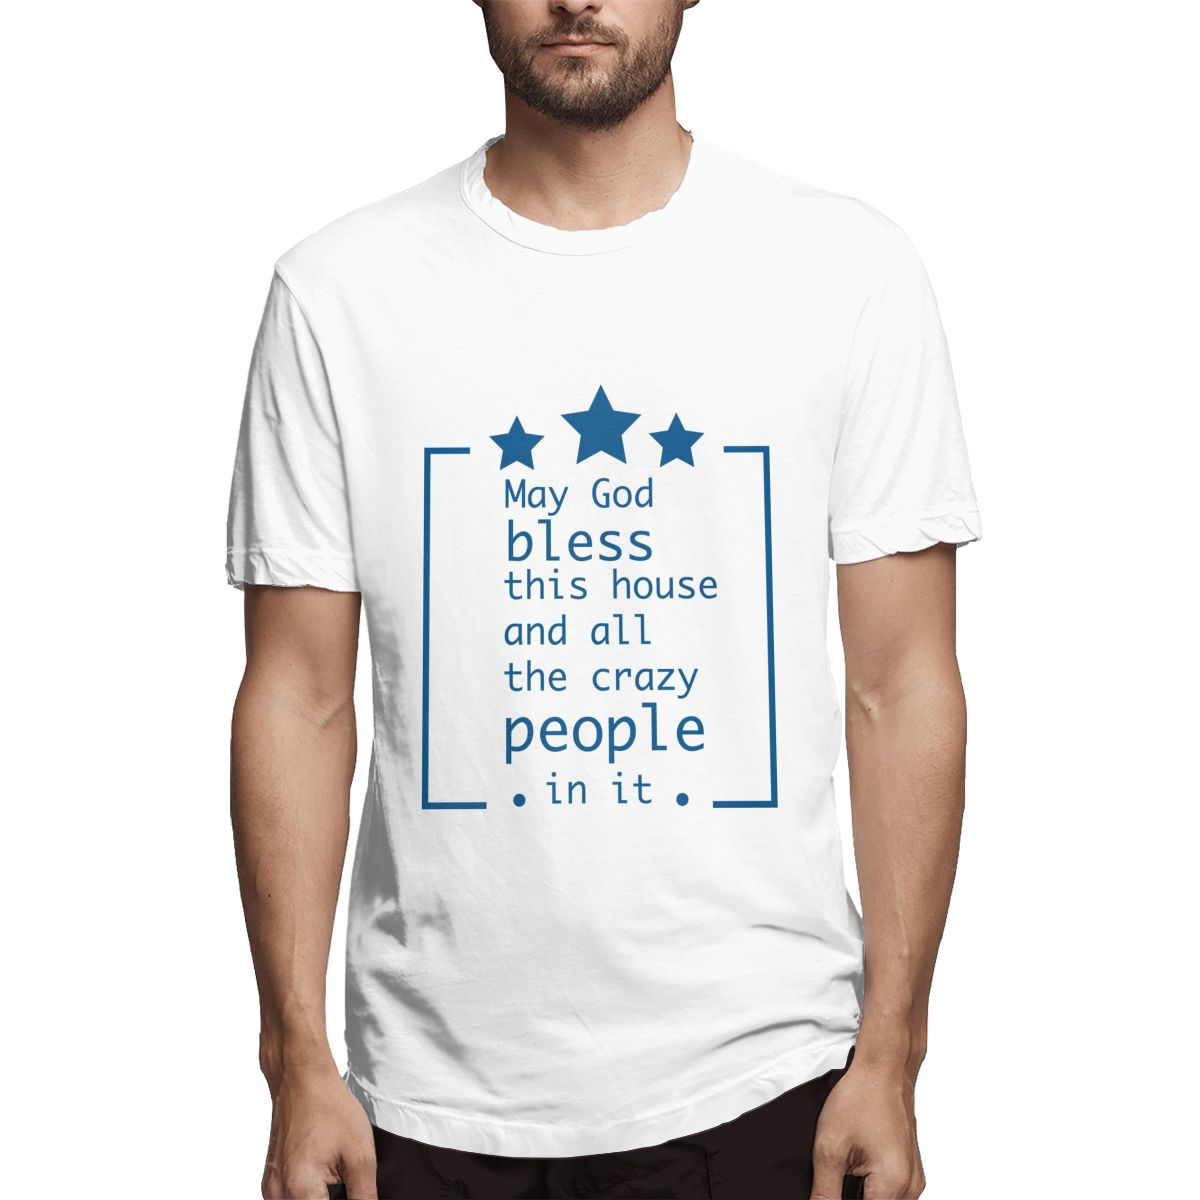 2020 New Tshirt Men t-shirt May God Bless This House And All The Crazy People In It T shirt Summer Tops image